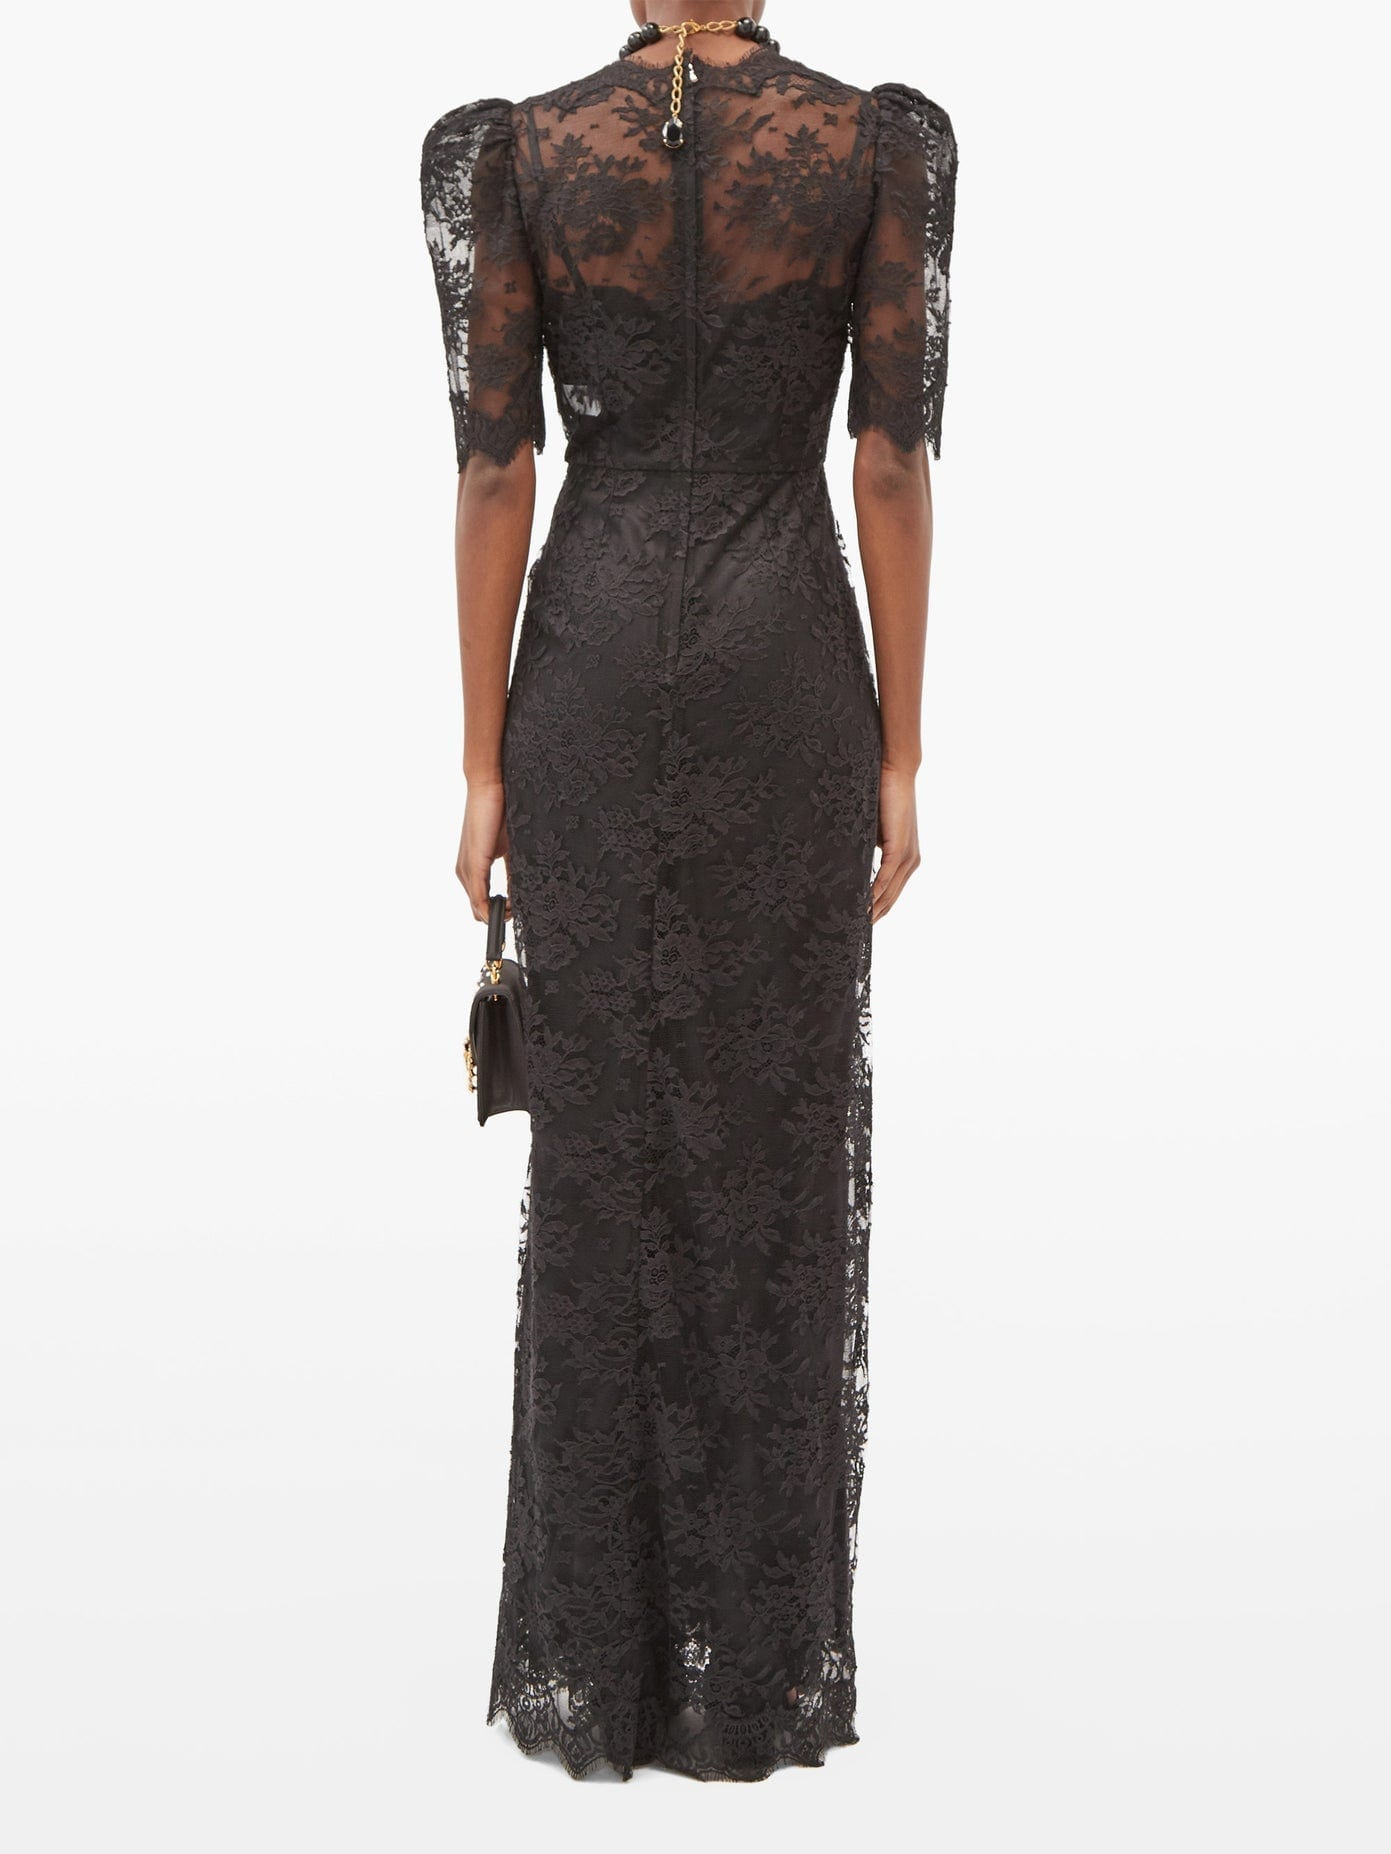 DOLCE & GABBANA Puff-sleeve Cotton-blend Chantilly-lace Gown